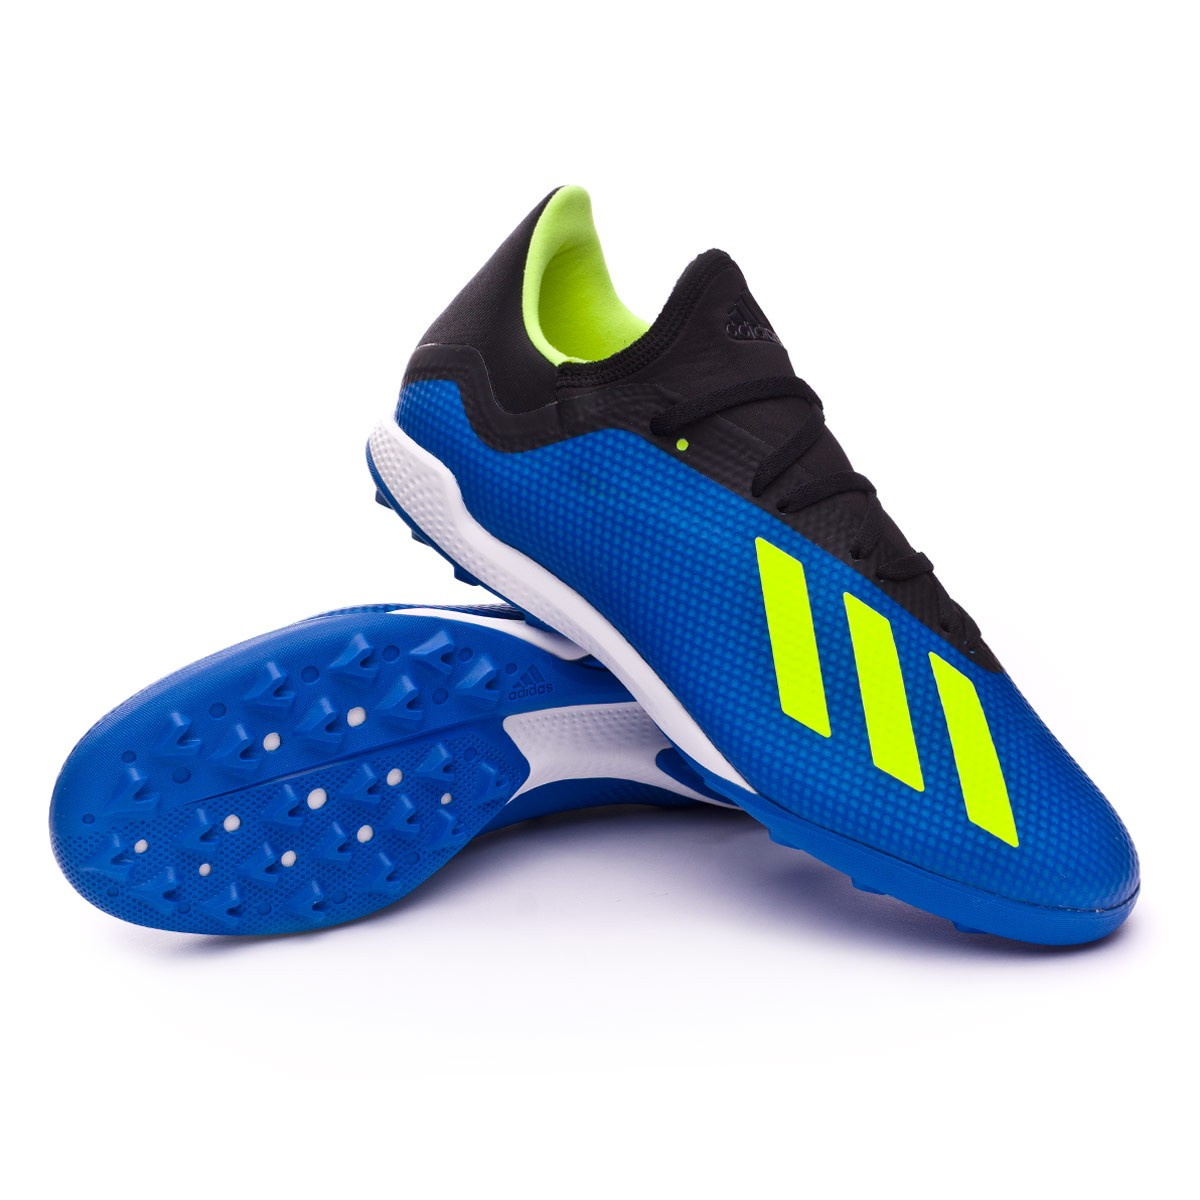 zapatilla adidas x tango 18 3 turf foot blue solar yellow black soloporteros es ahora f tbol. Black Bedroom Furniture Sets. Home Design Ideas